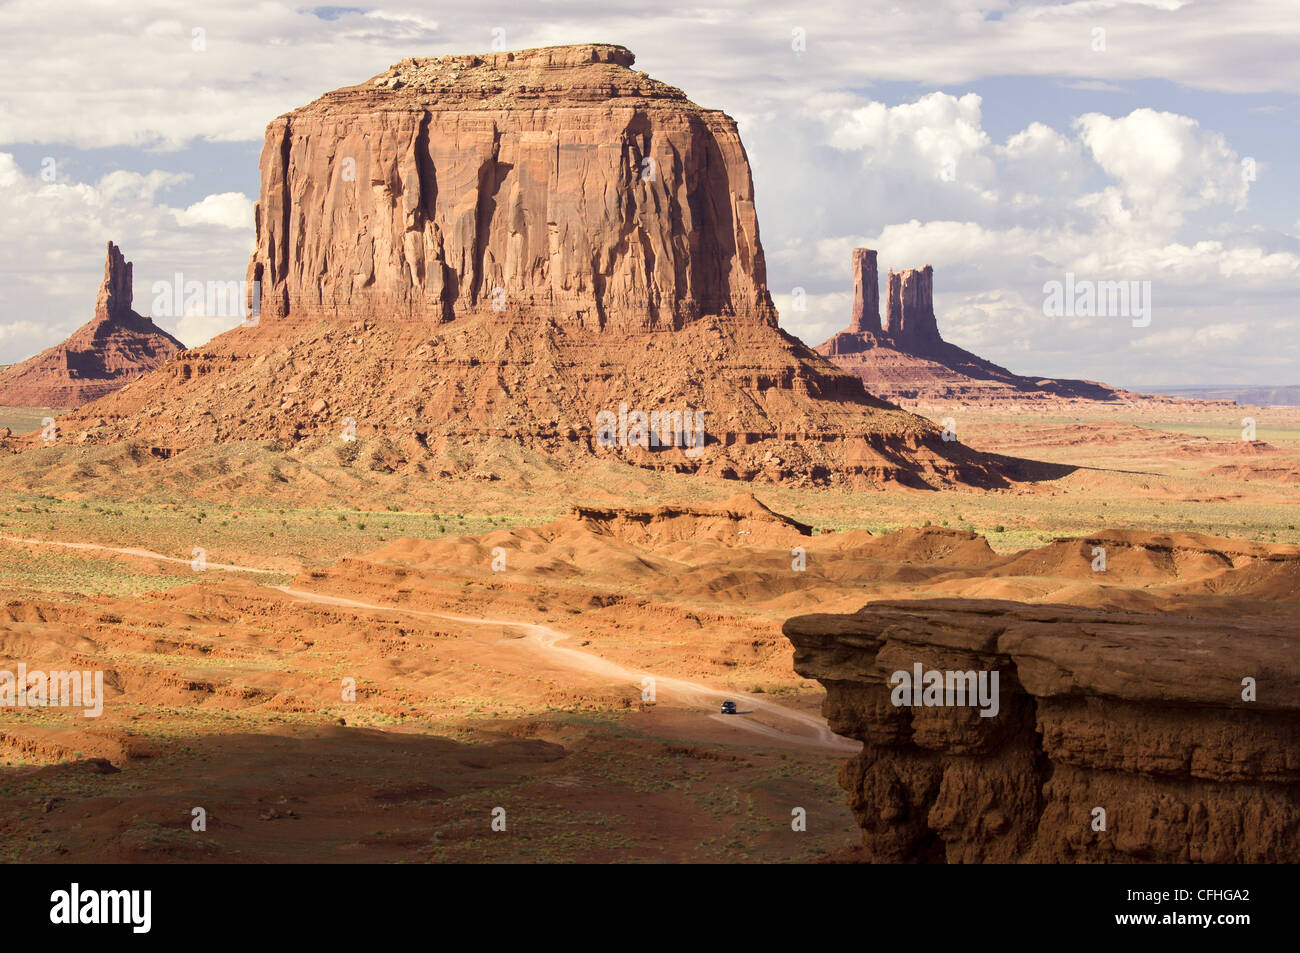 Monument Valley Tribal Park mesas and buttes - Stock Image